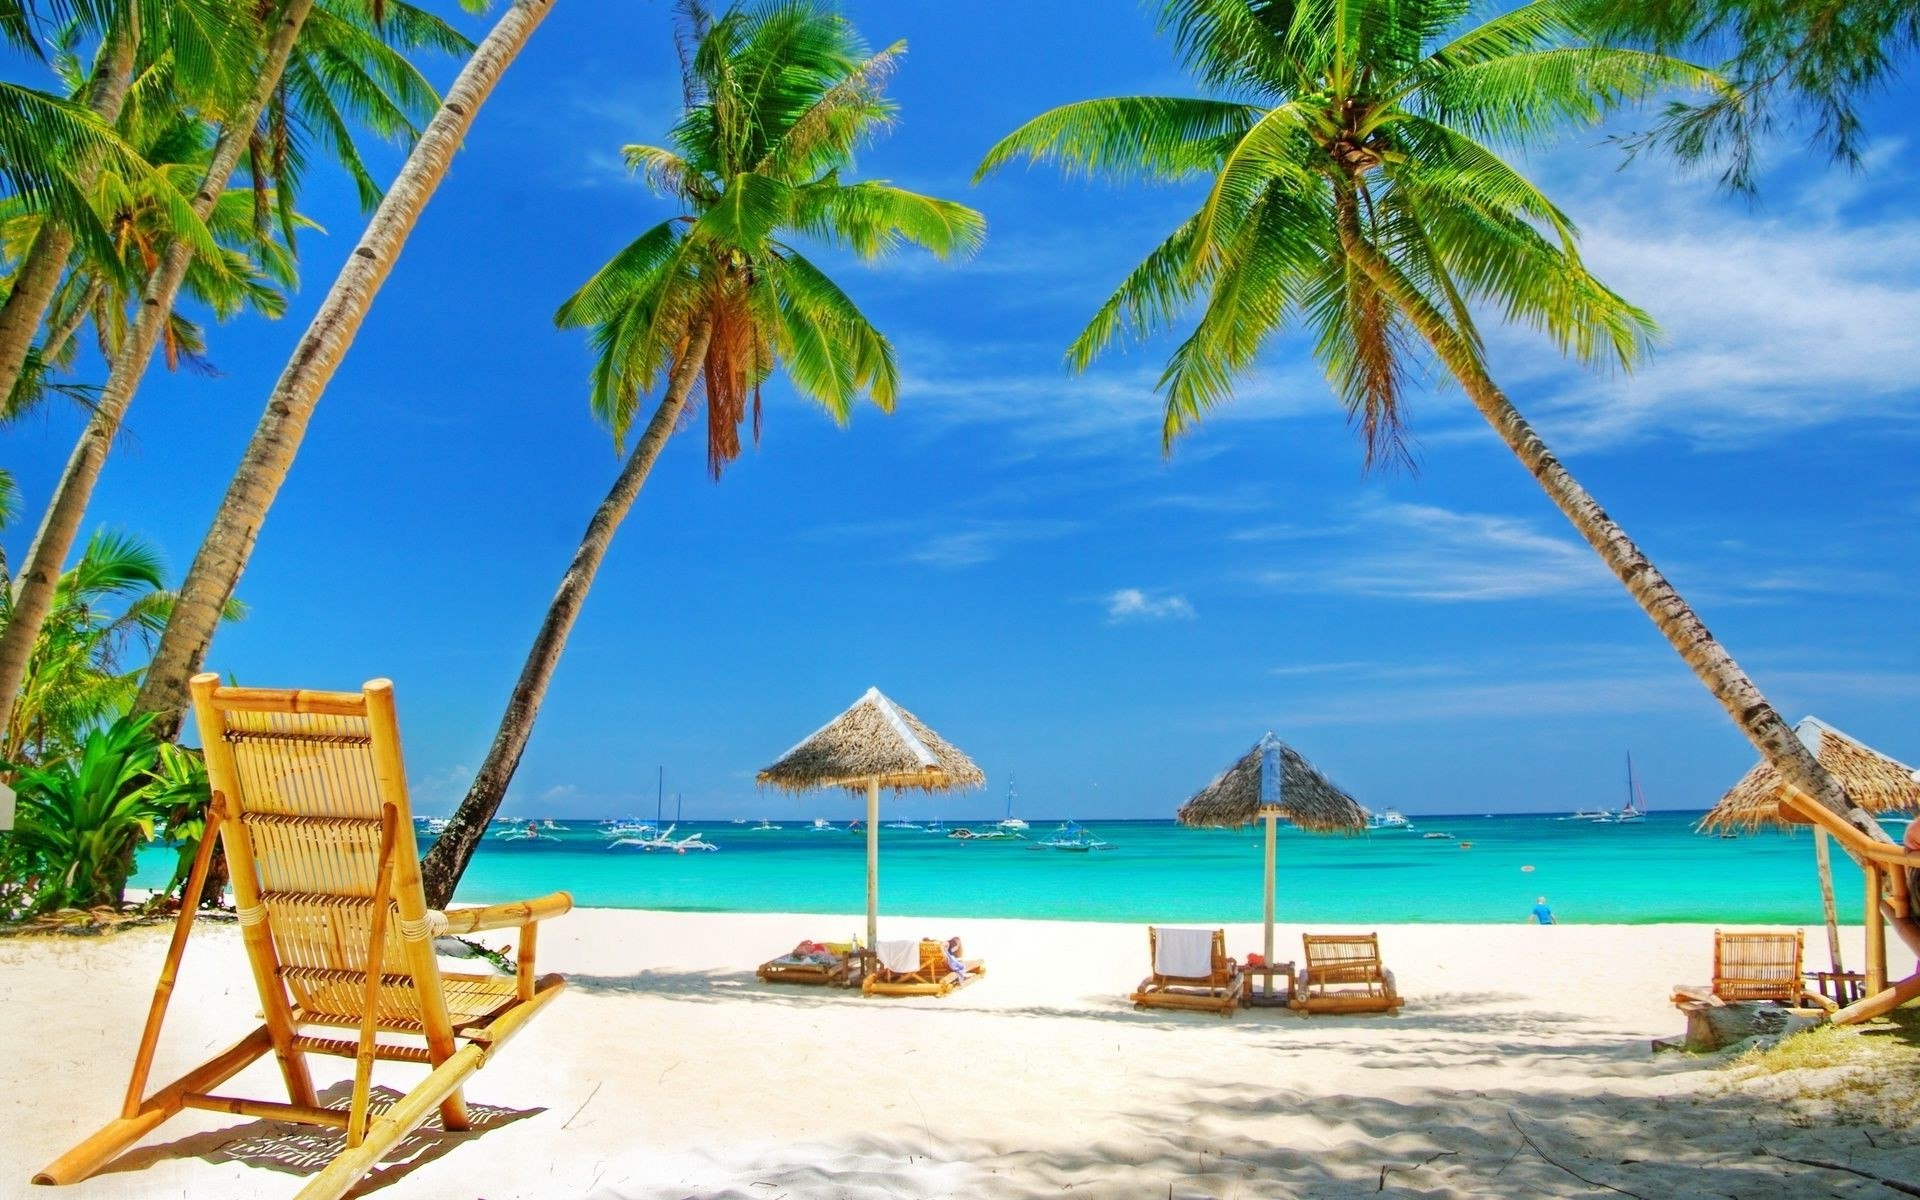 sea and ocean tropical beach palm resort sand paradise vacation summer ocean island chair exotic seashore relaxation travel sun turquoise idyllic coconut shore